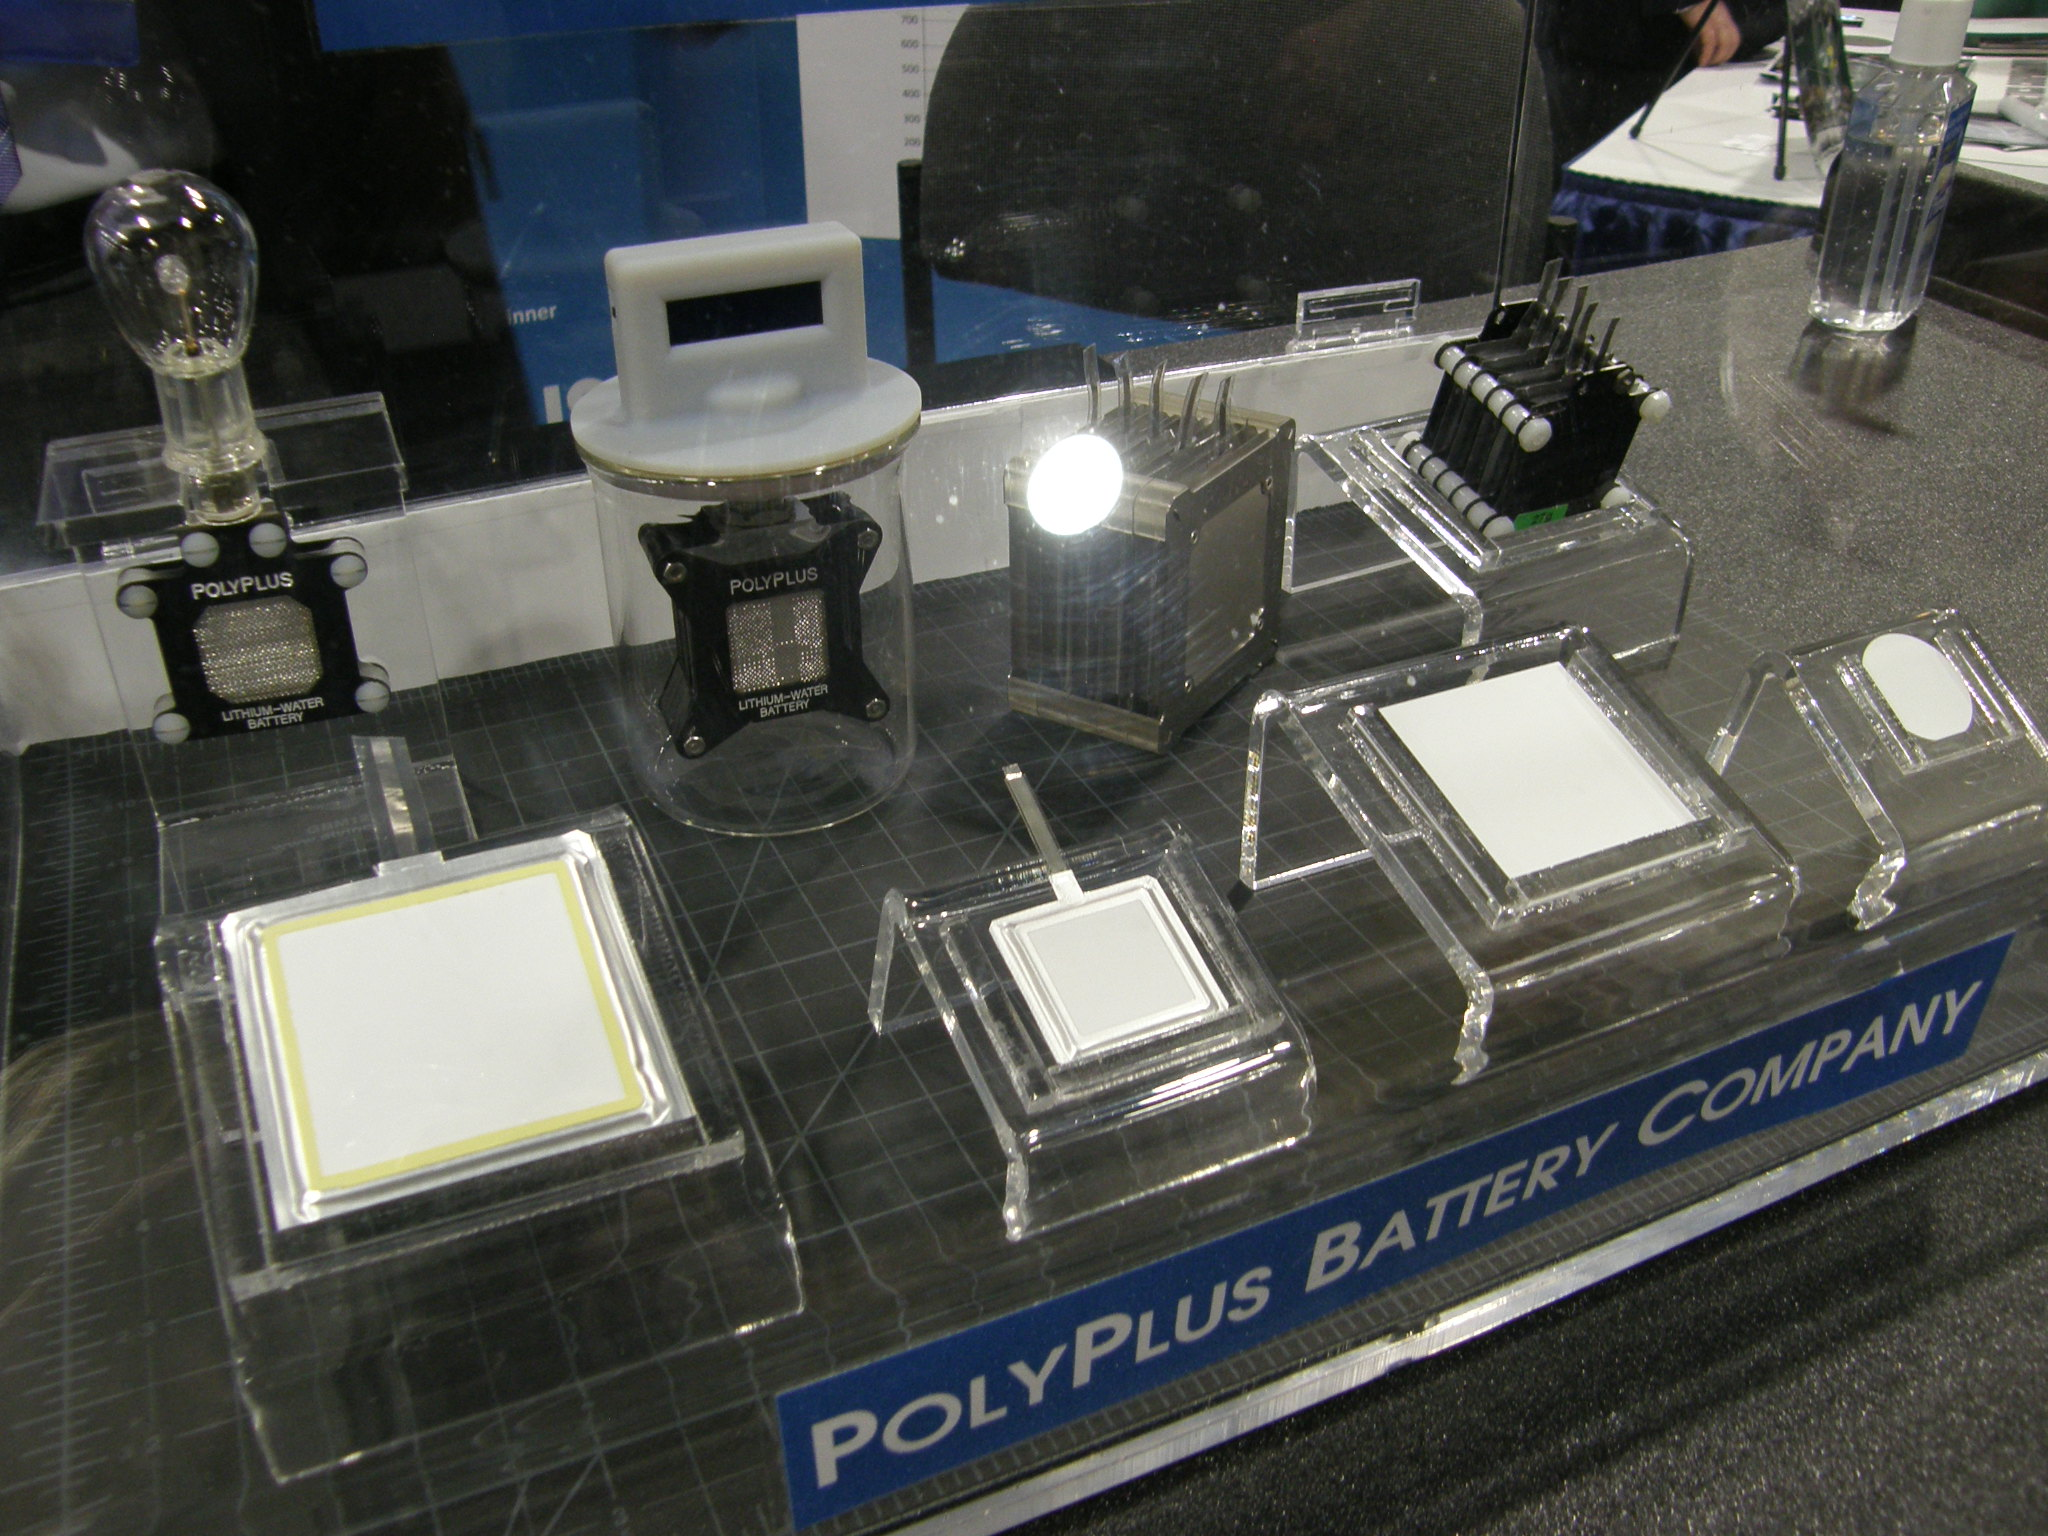 PolyPlus Batteries